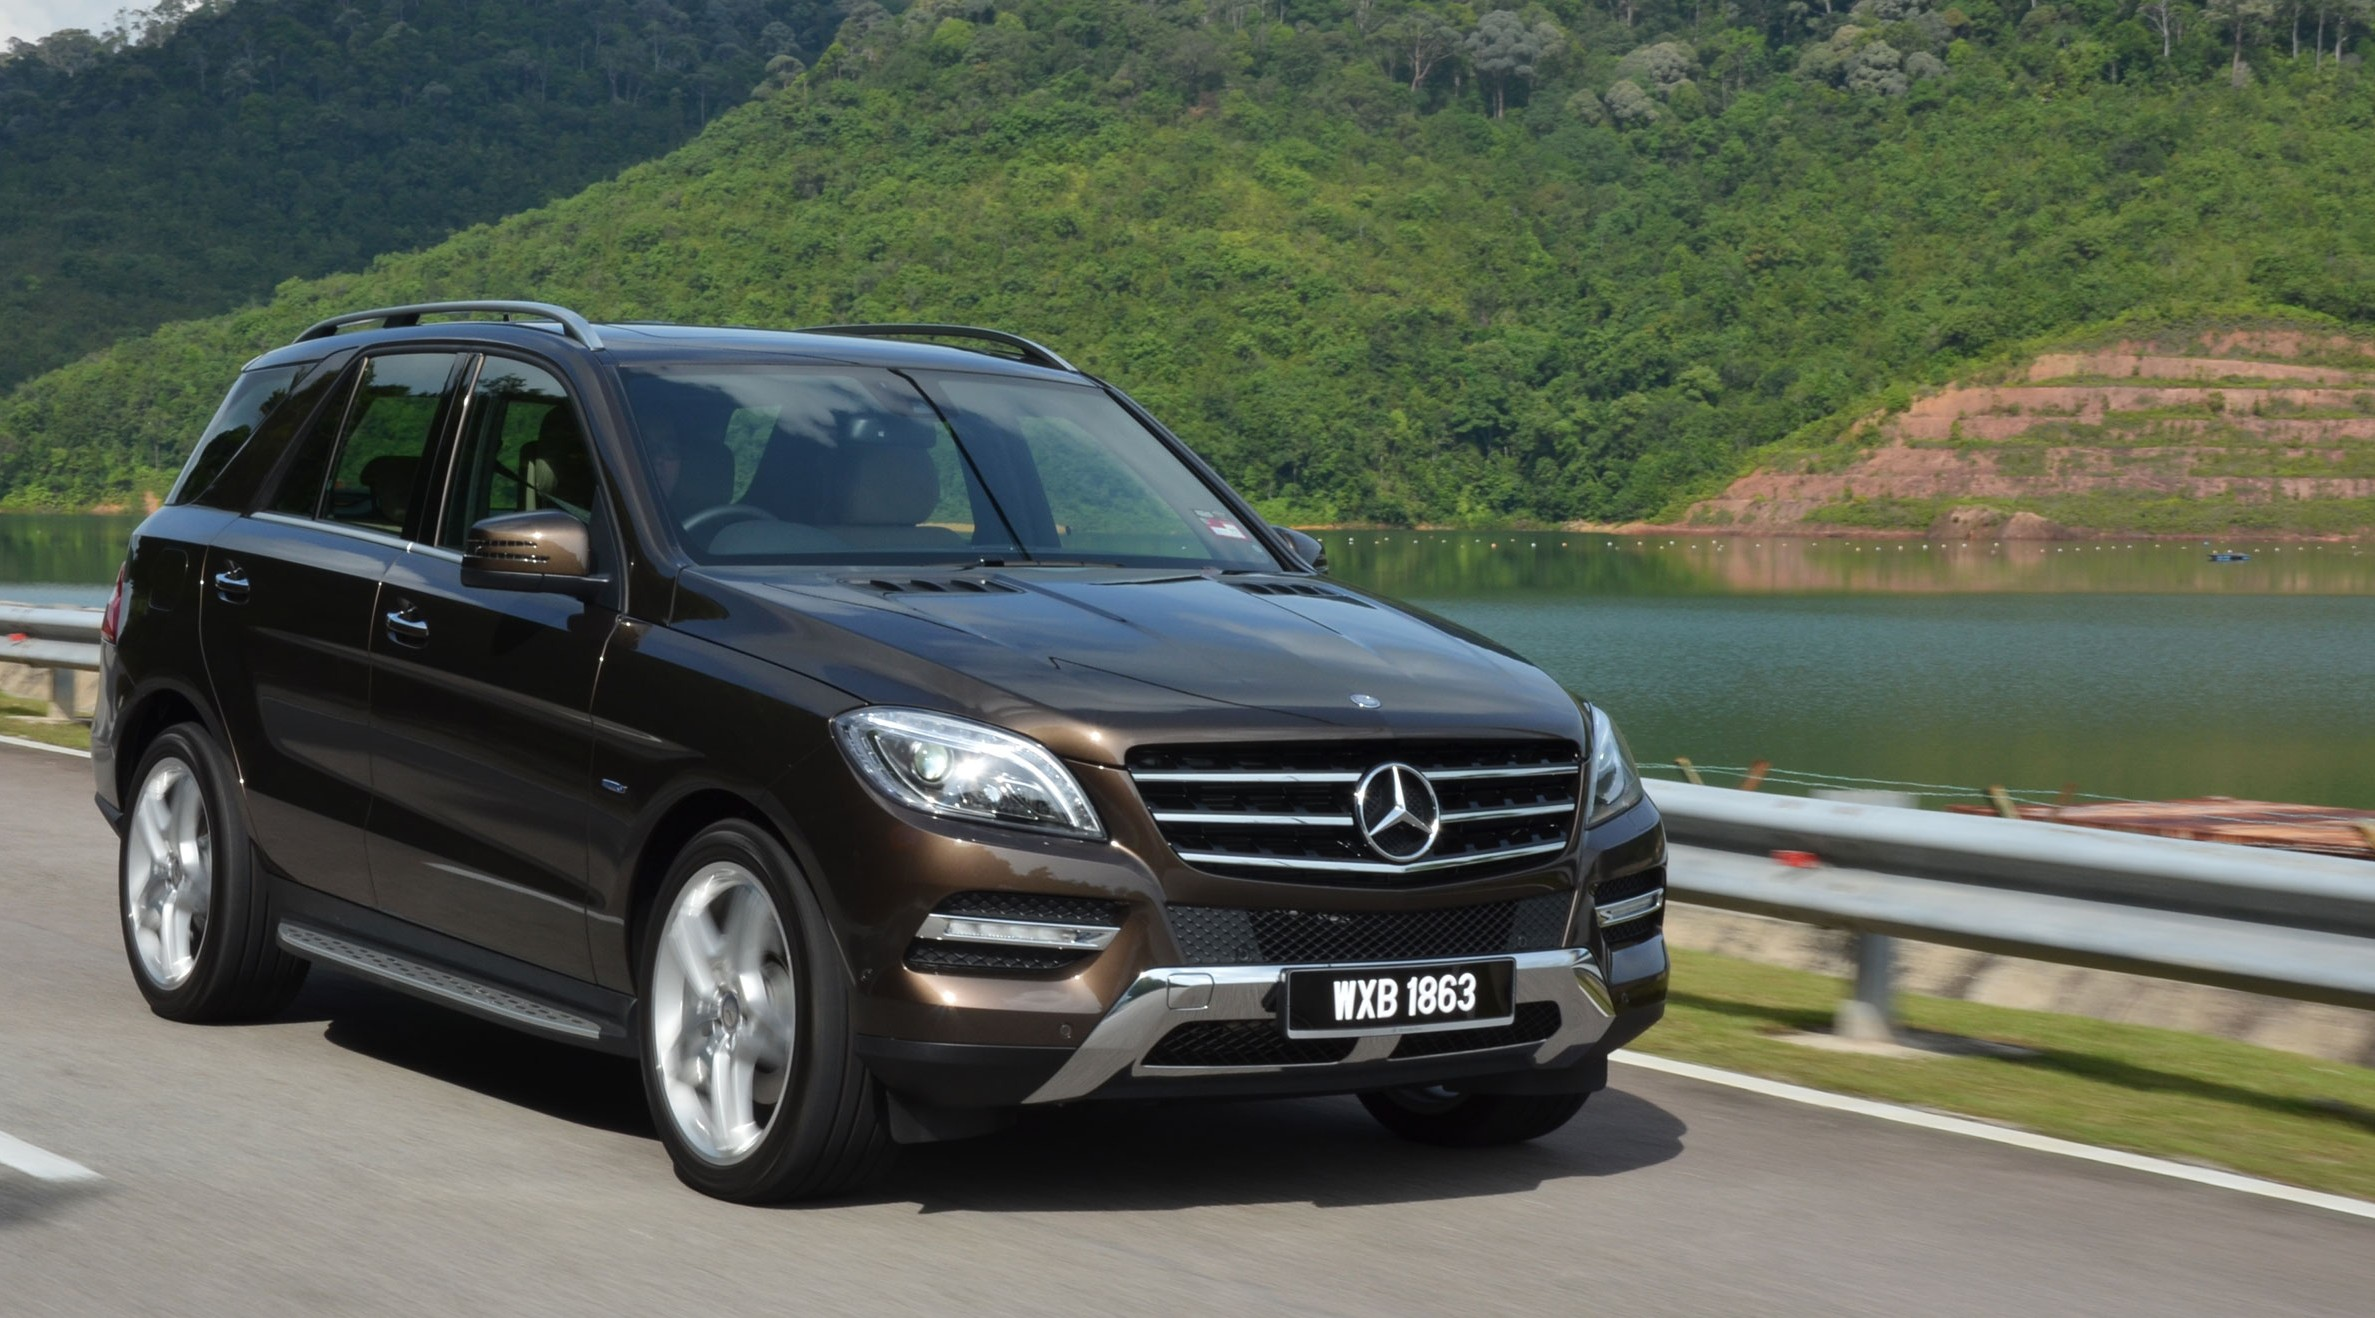 driven mercedes benz m class ml 350 4matic blueefficiency previewed a quick return to kl. Black Bedroom Furniture Sets. Home Design Ideas